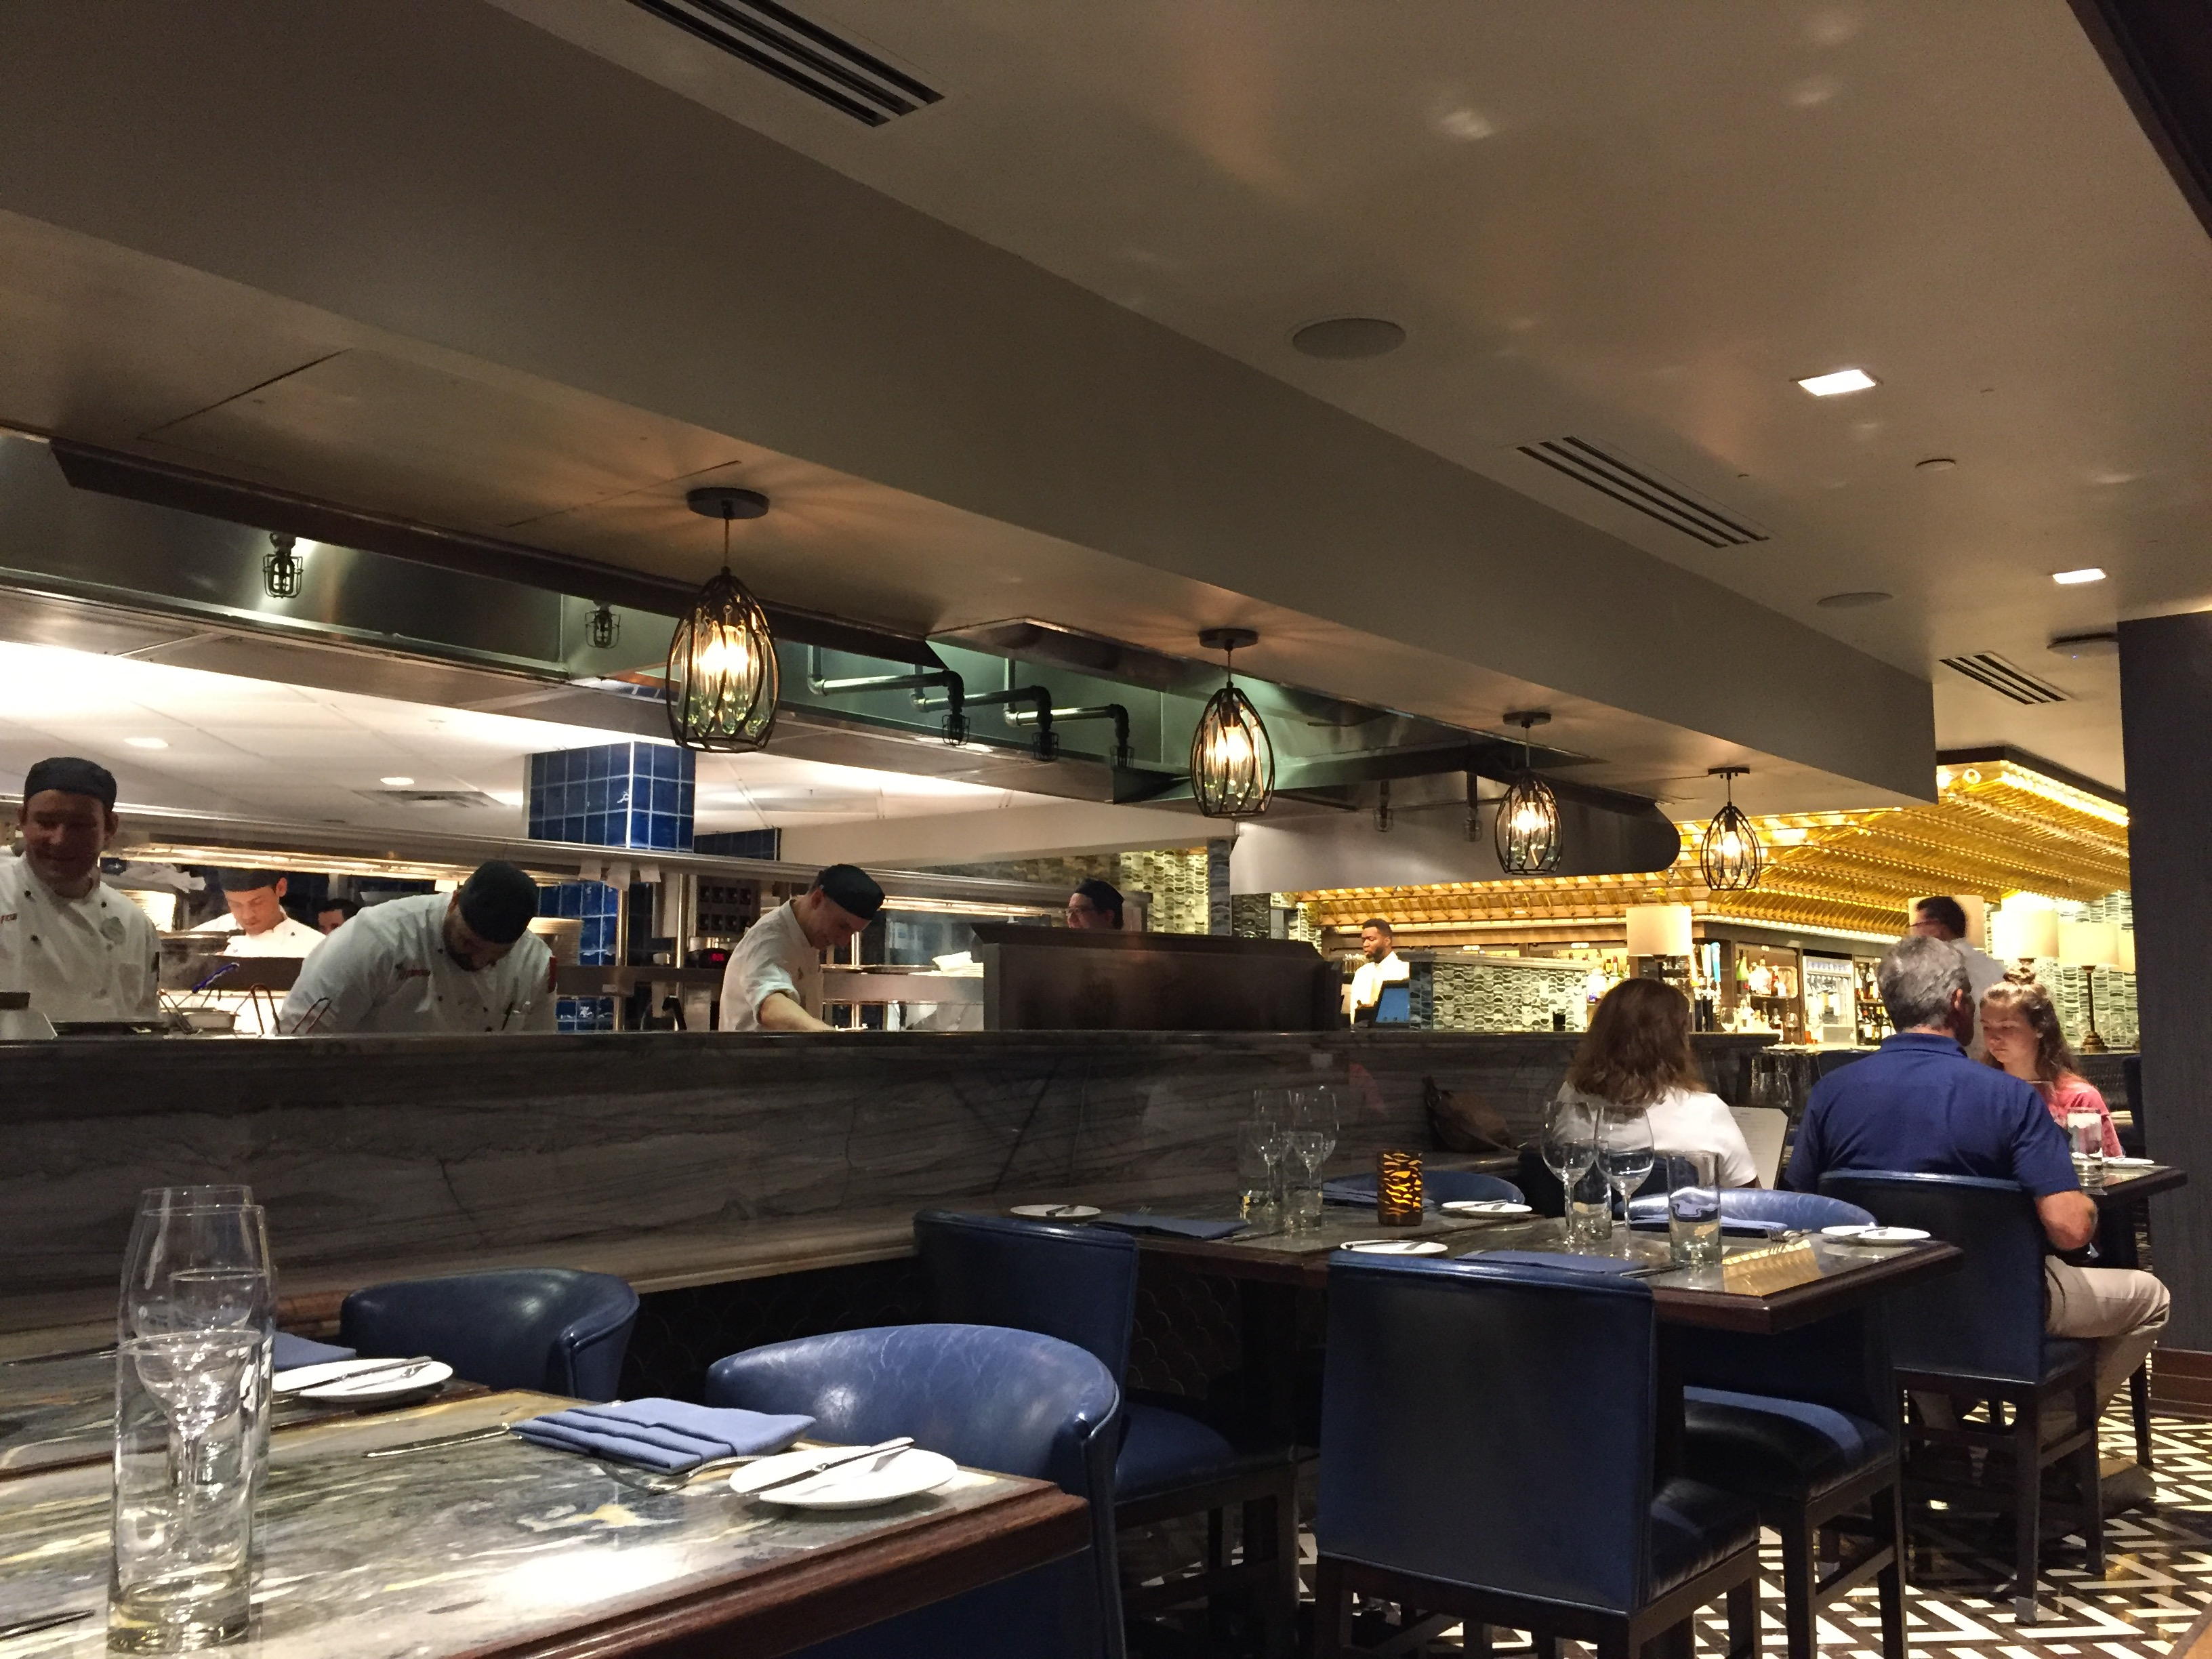 Dining Review: Flying Fish